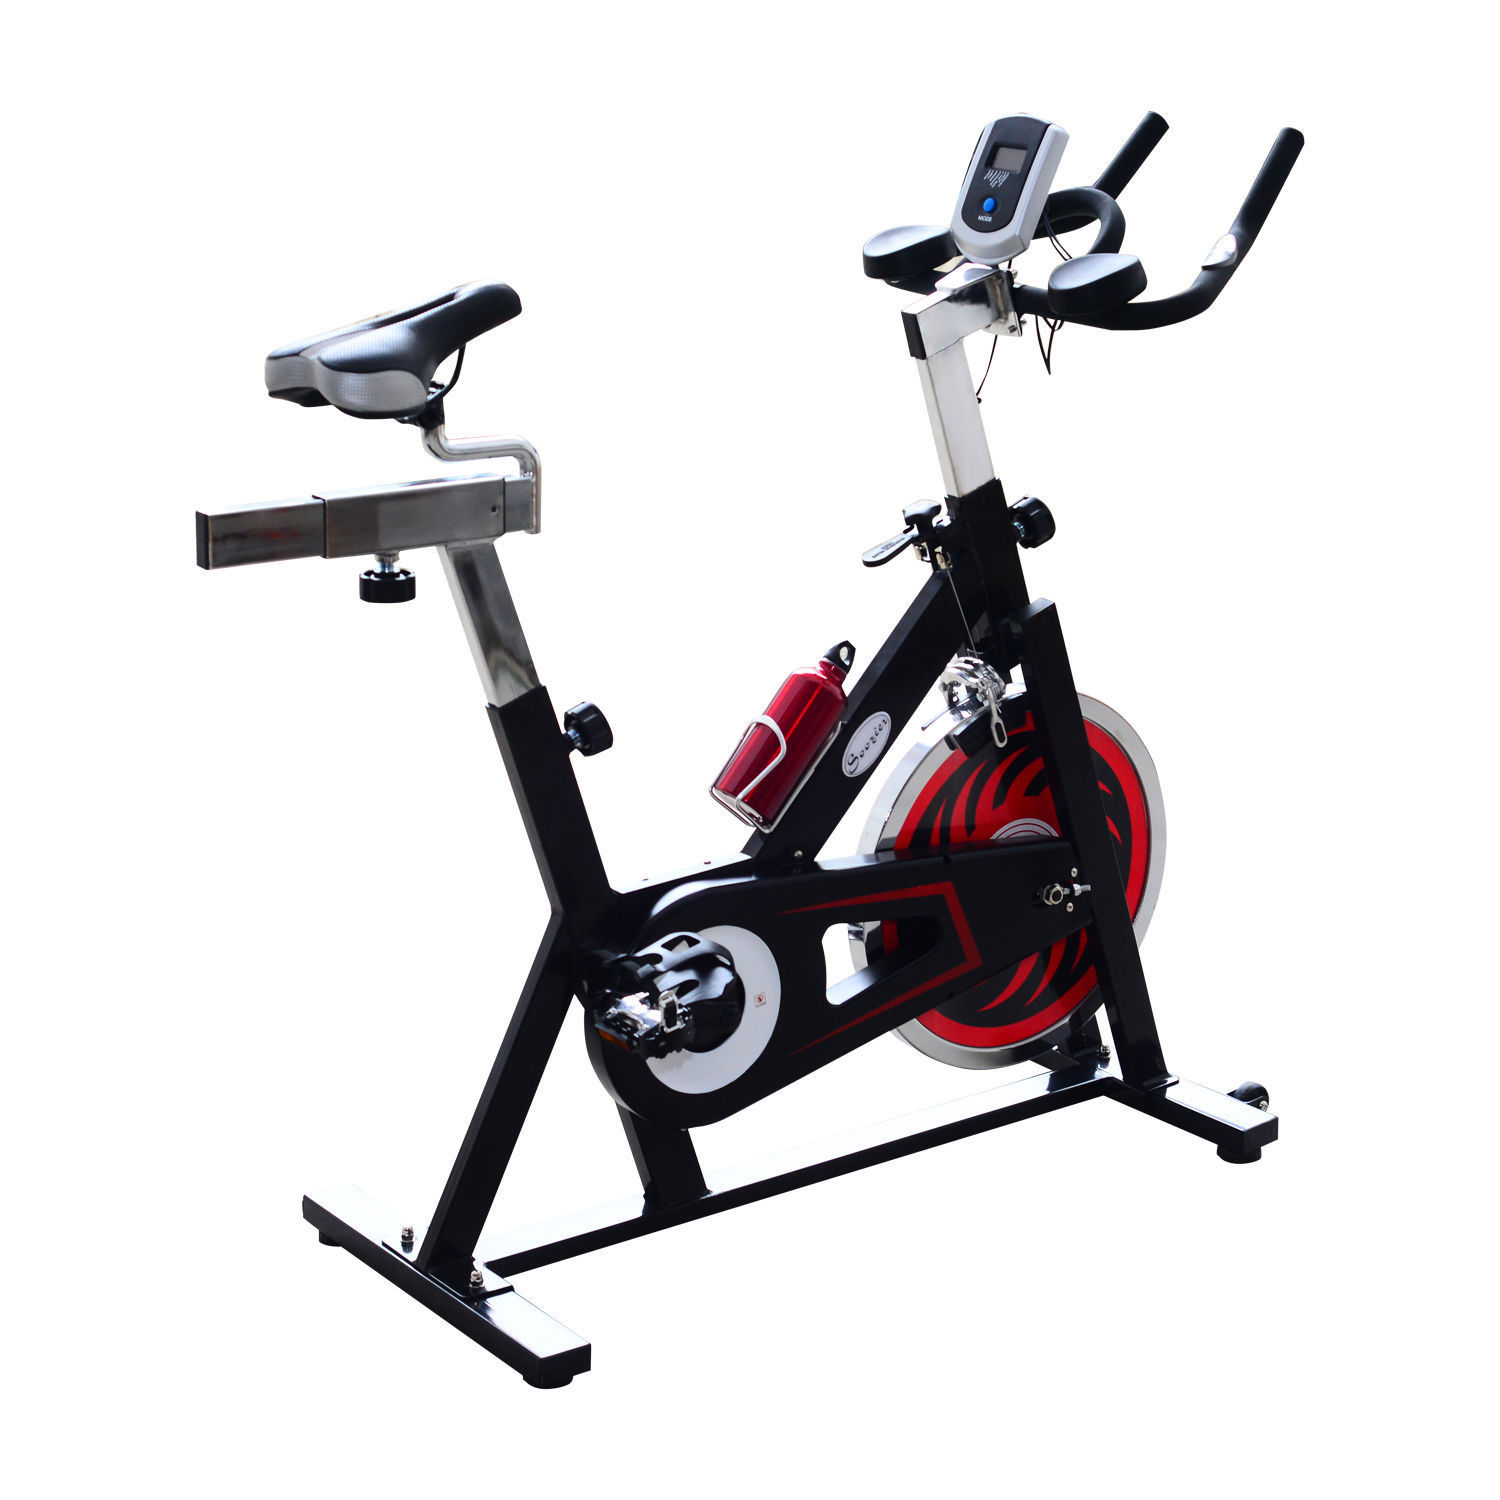 "GHP 17"" Flywheel Diameter Black & Red Steel Stationary Exercise Bike with LCD Monitor"